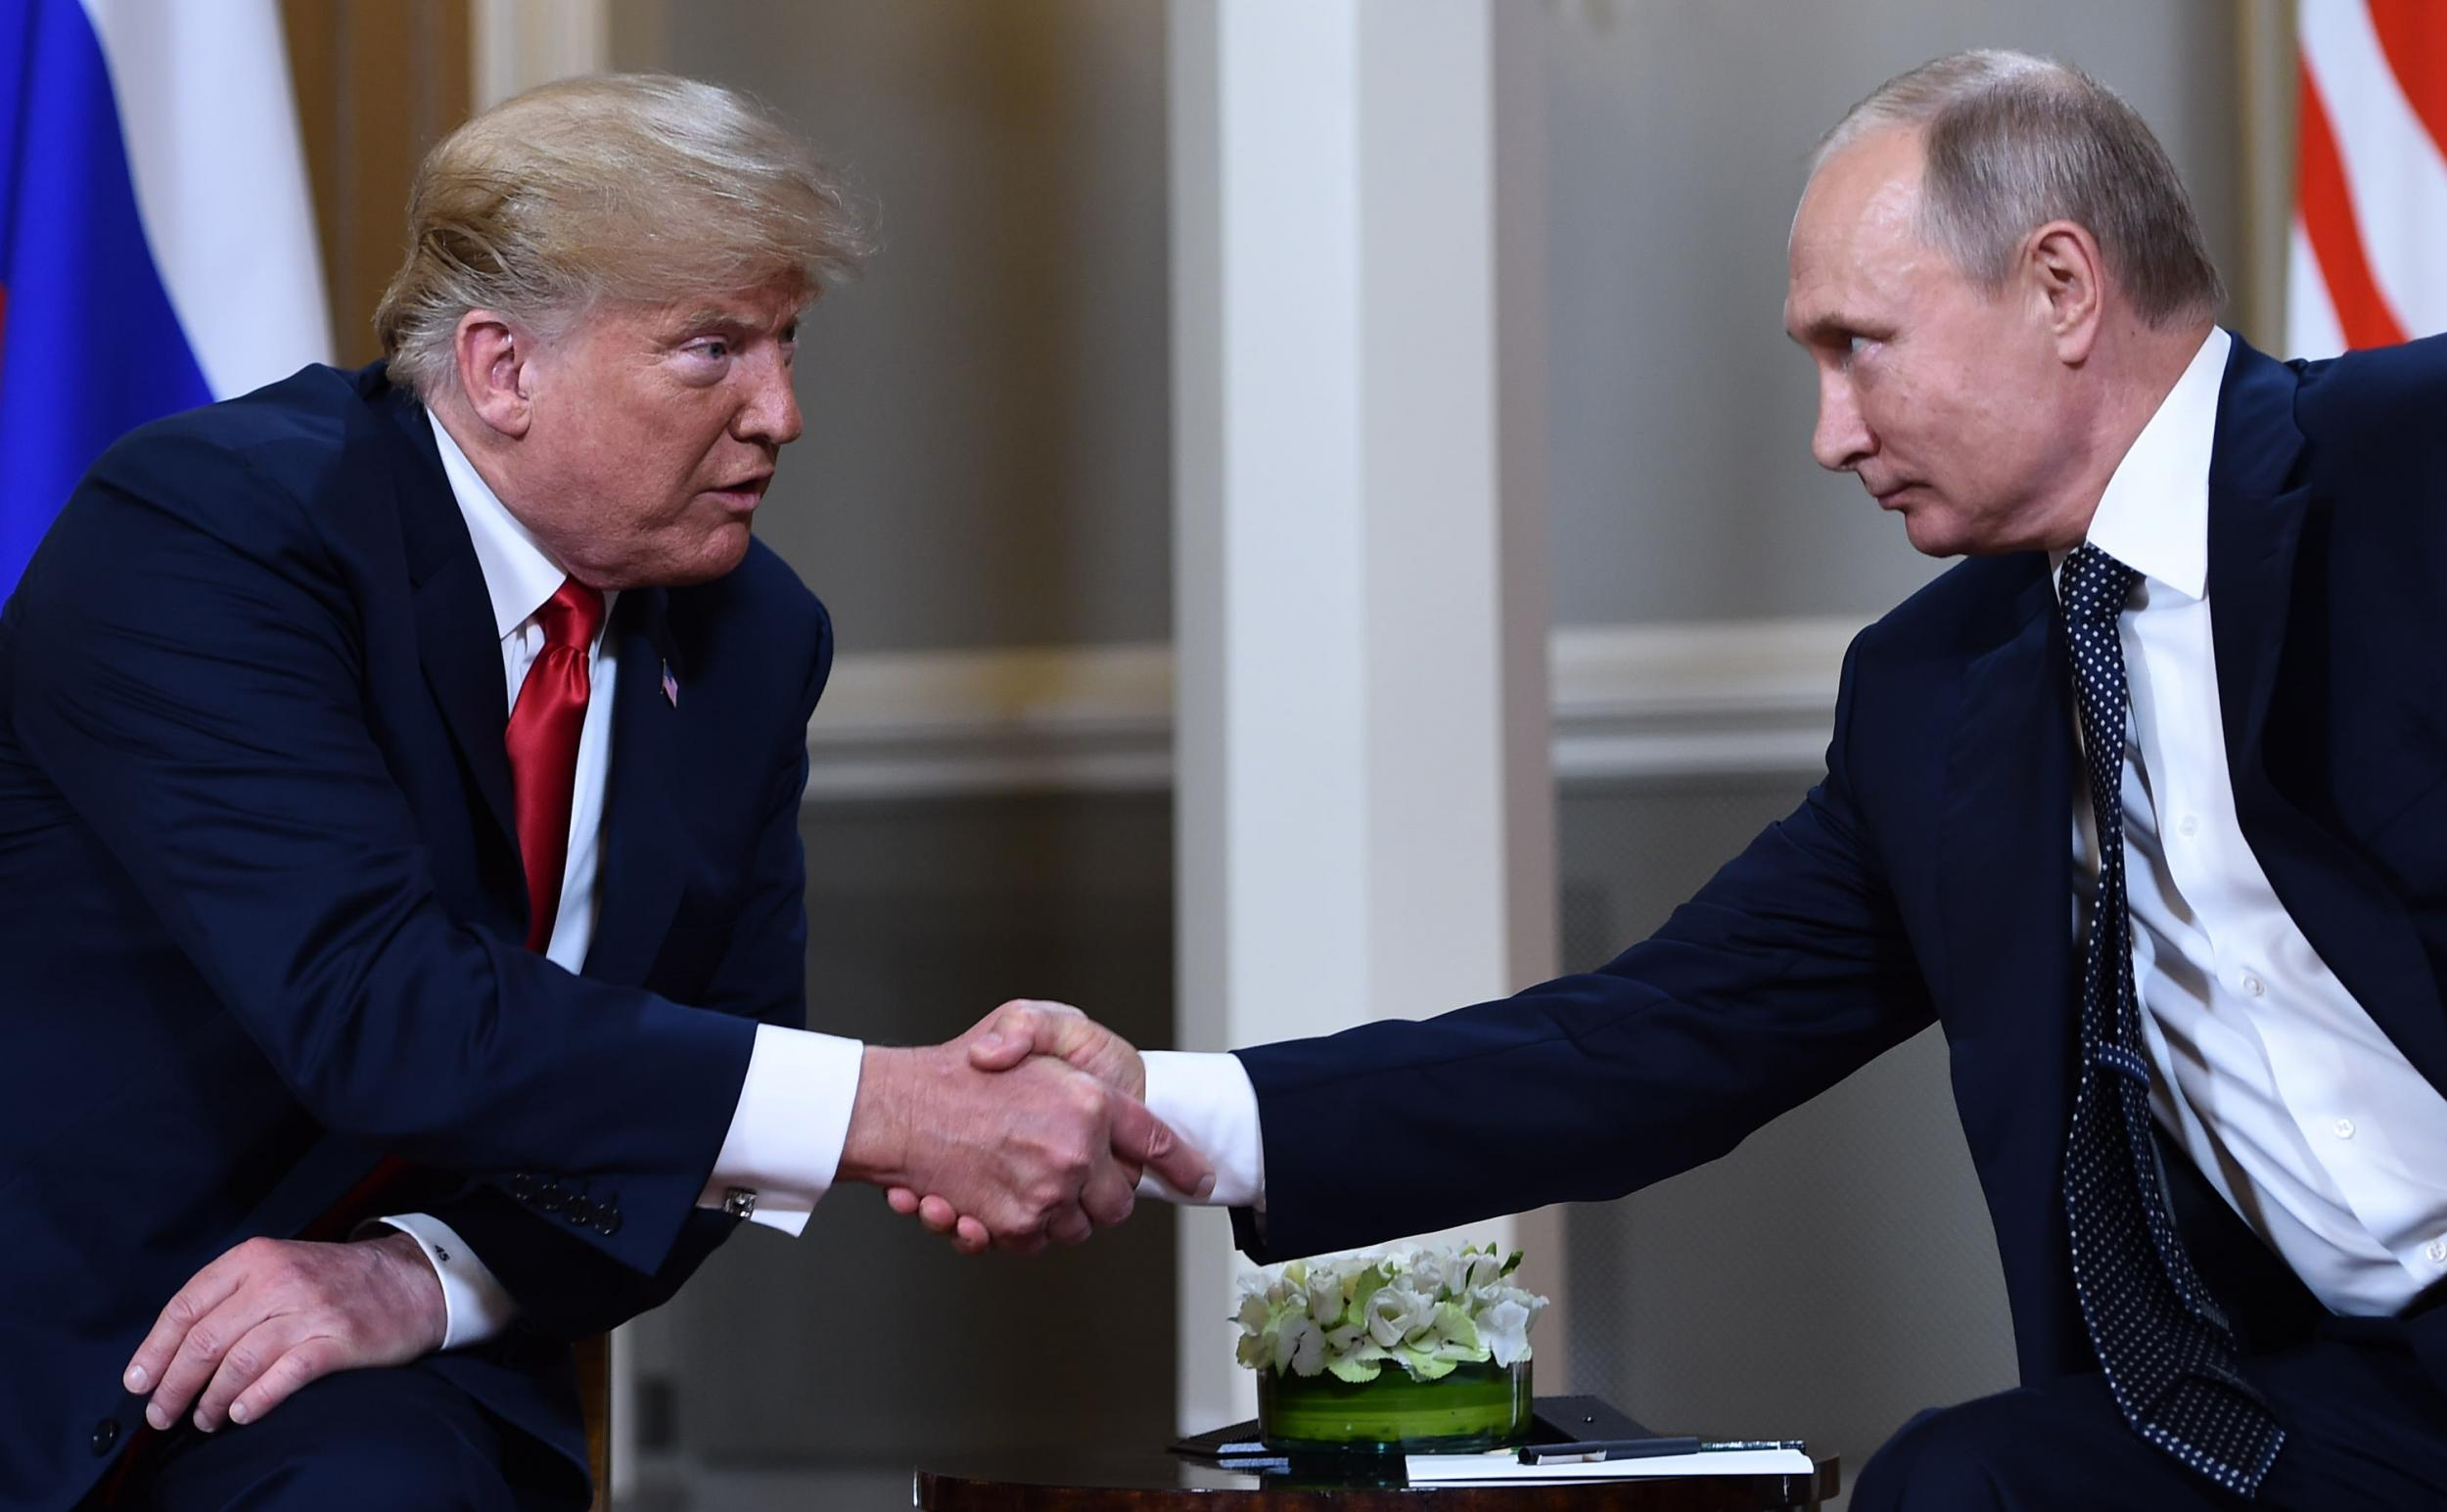 Most Americans support Trump inviting Putin to White House, poll finds